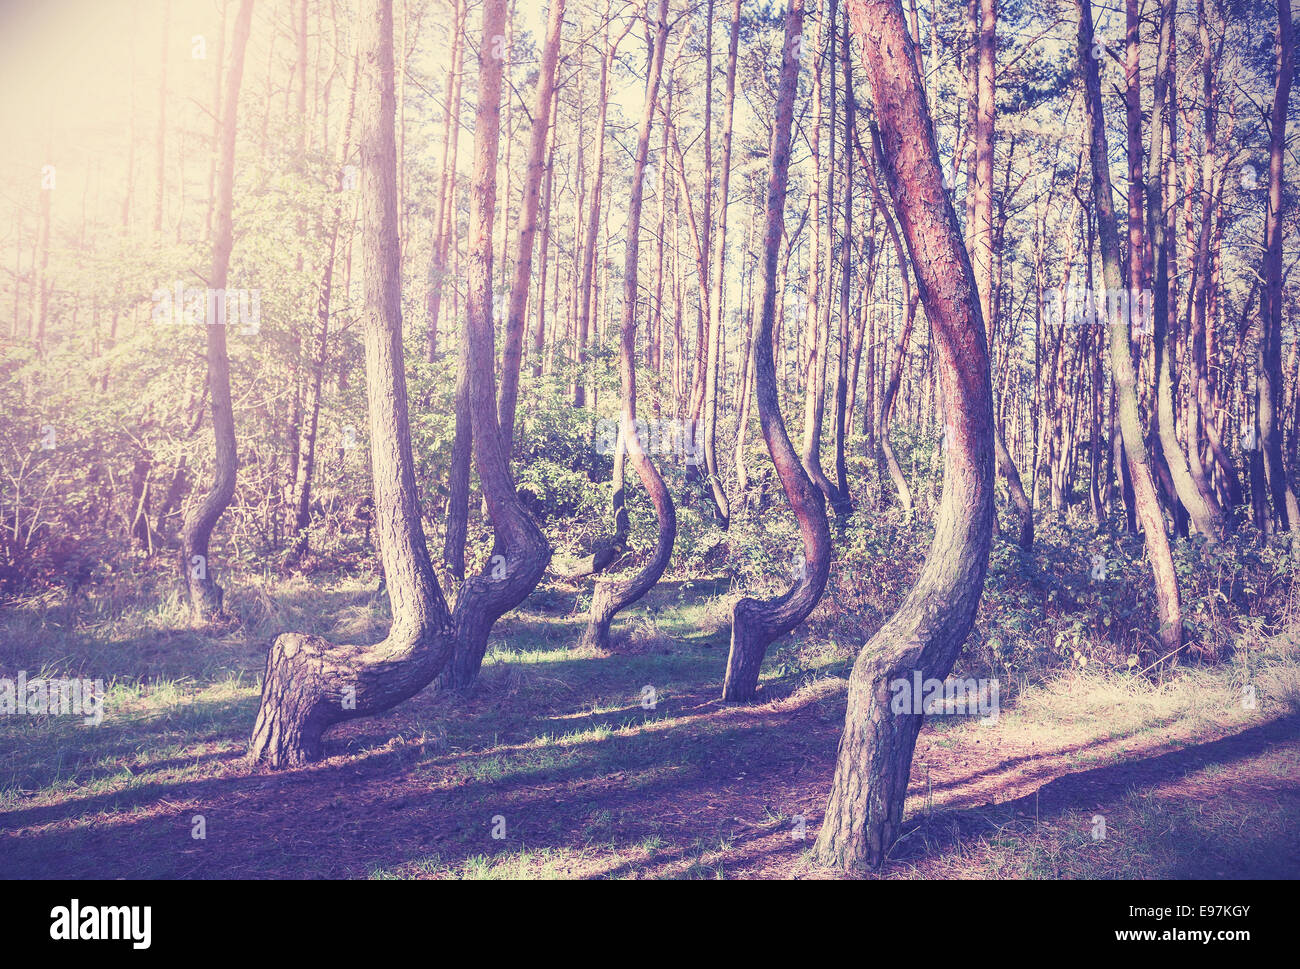 Vintage style picture of Crooked Forest, Poland. - Stock Image